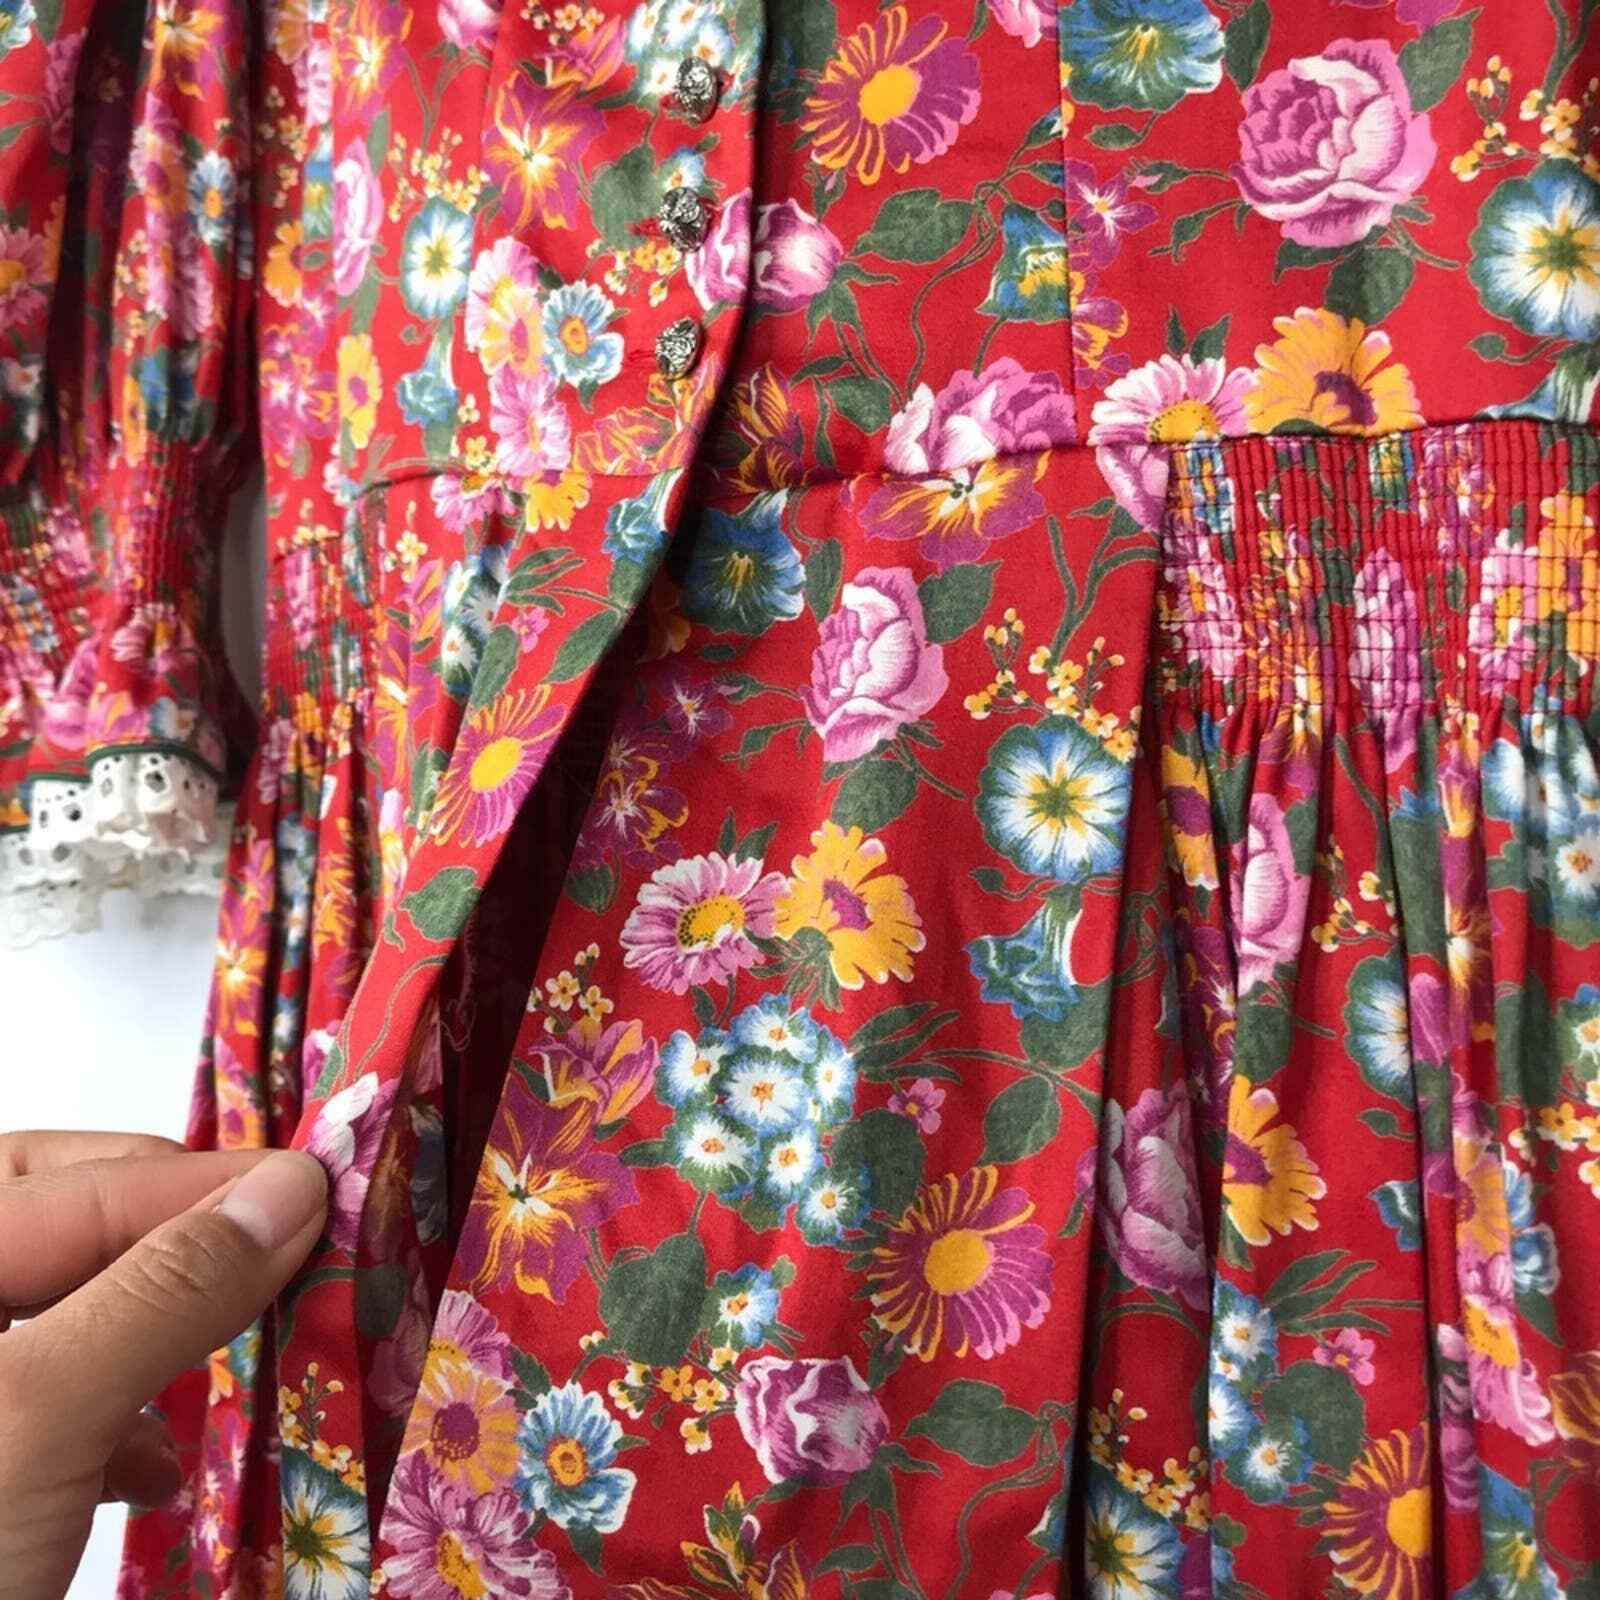 60s Style cottagecore floral prairie pleated dress - image 10